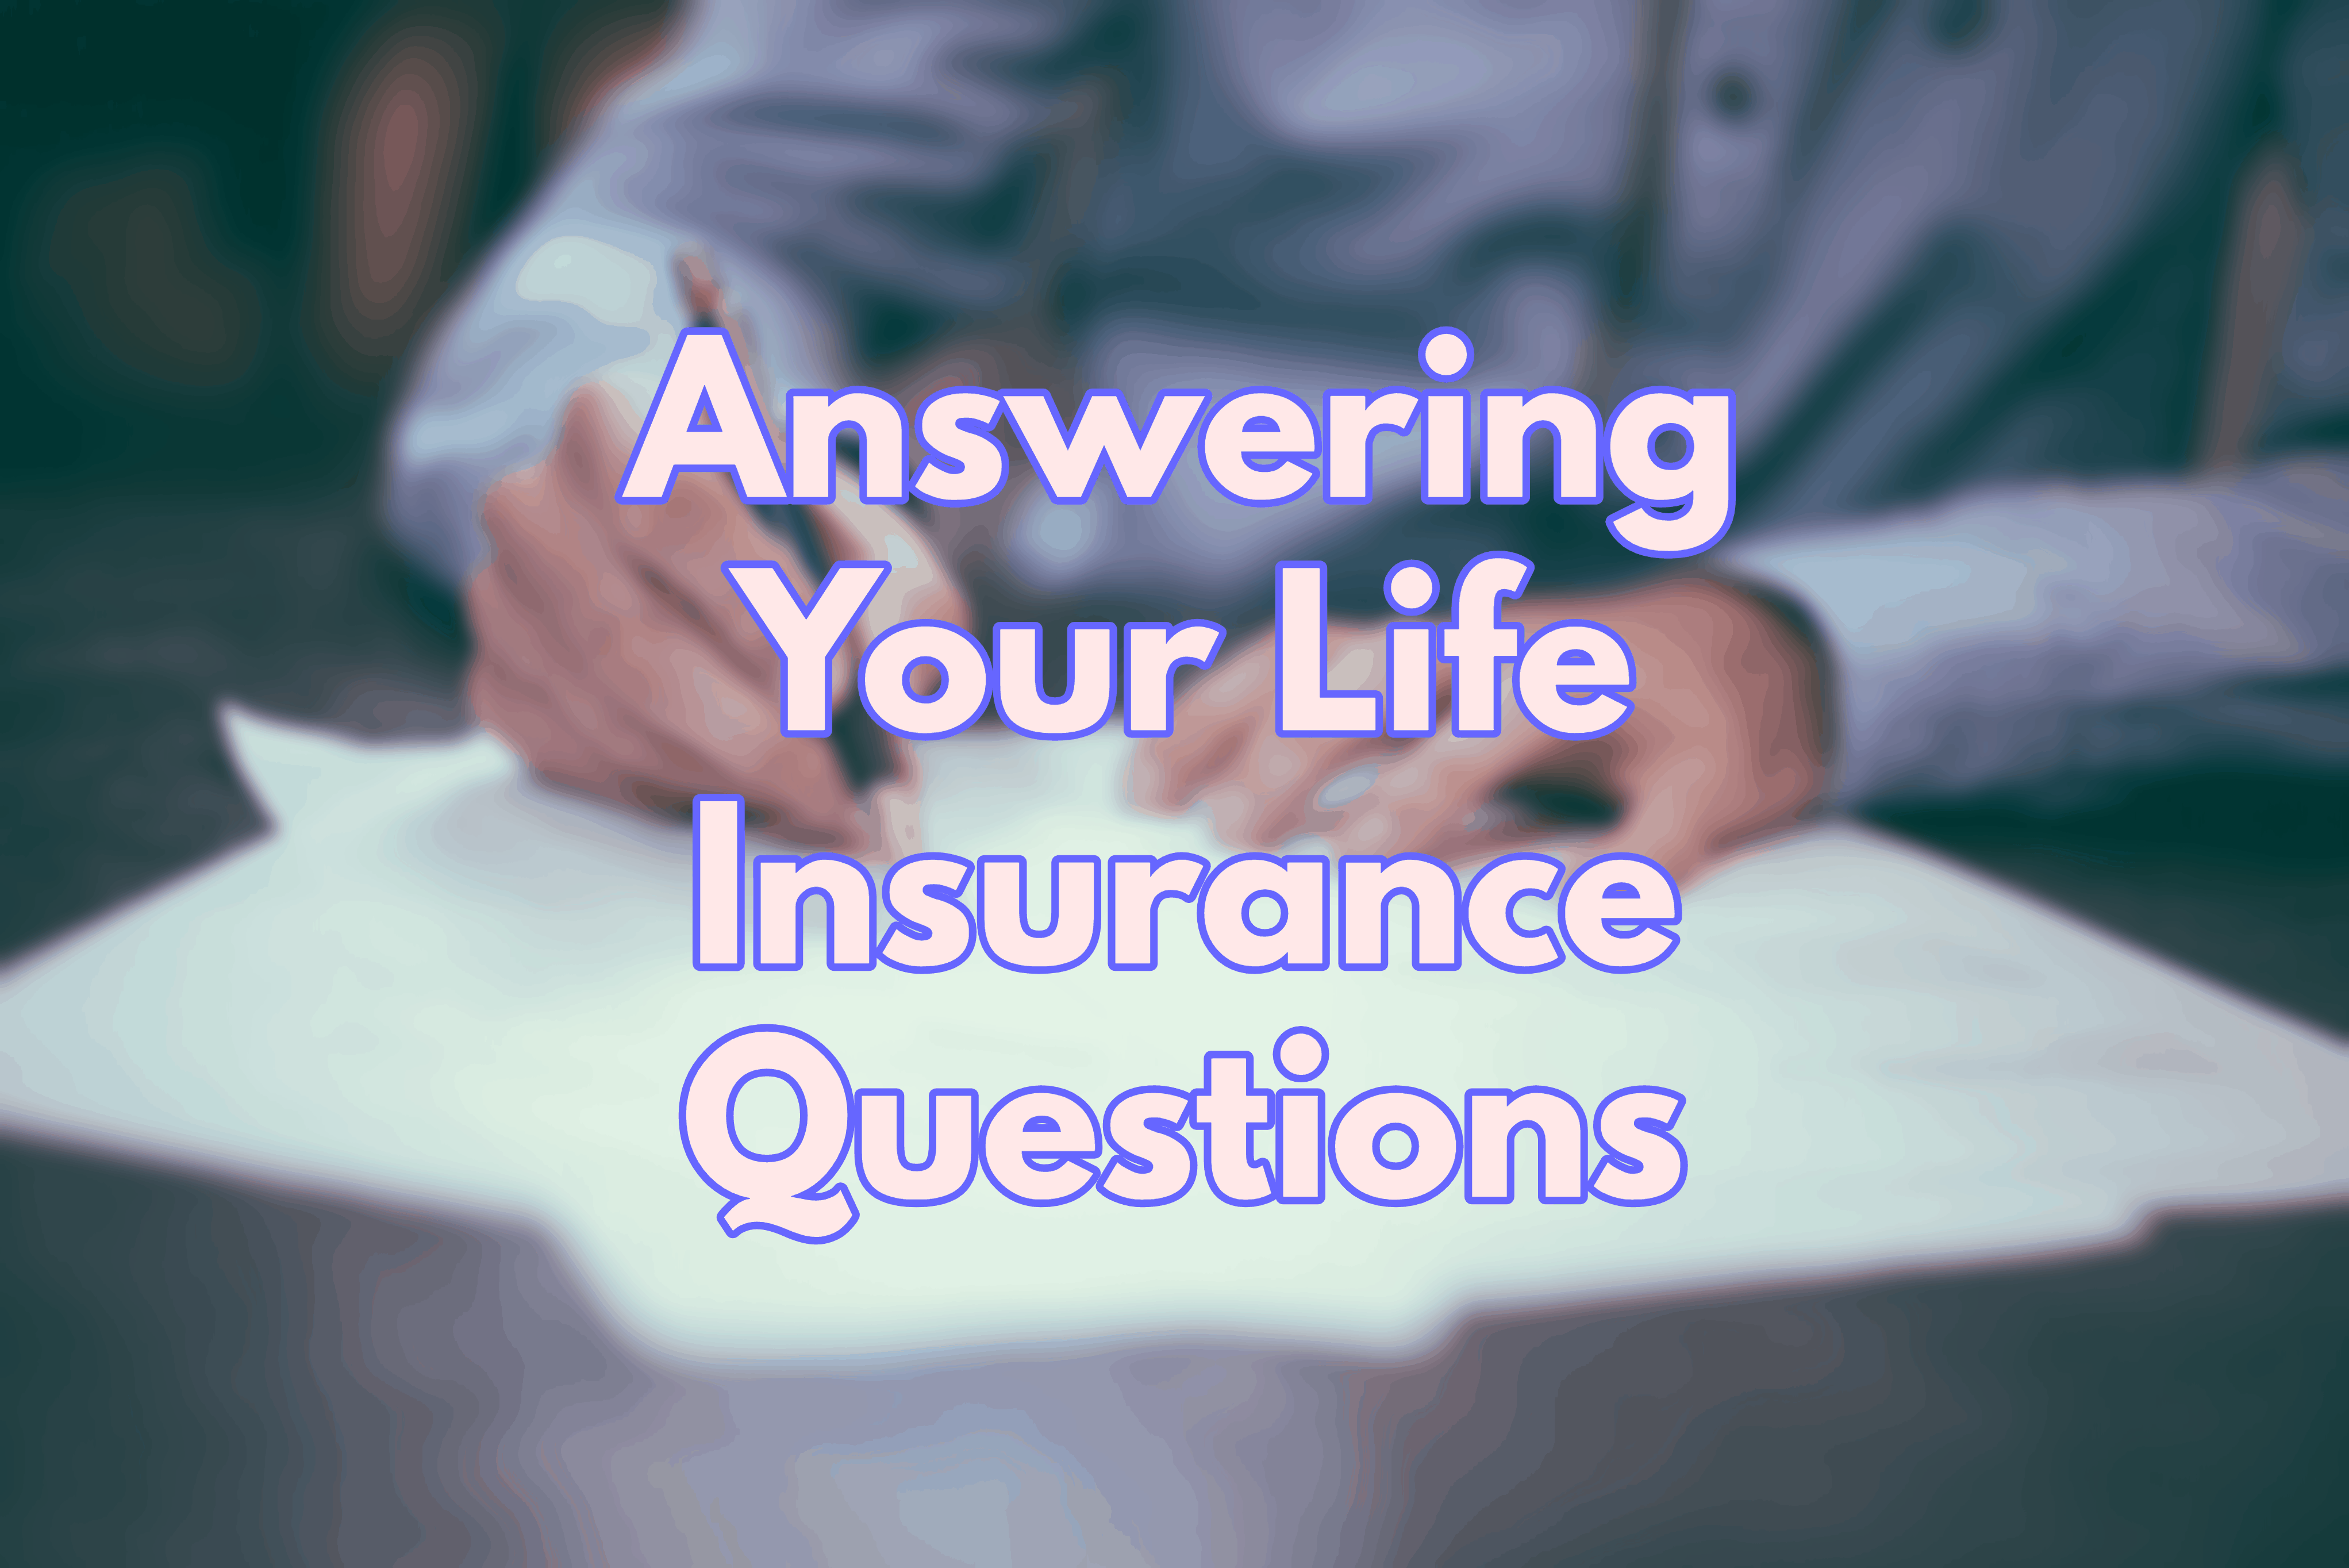 answering your life insurance questions